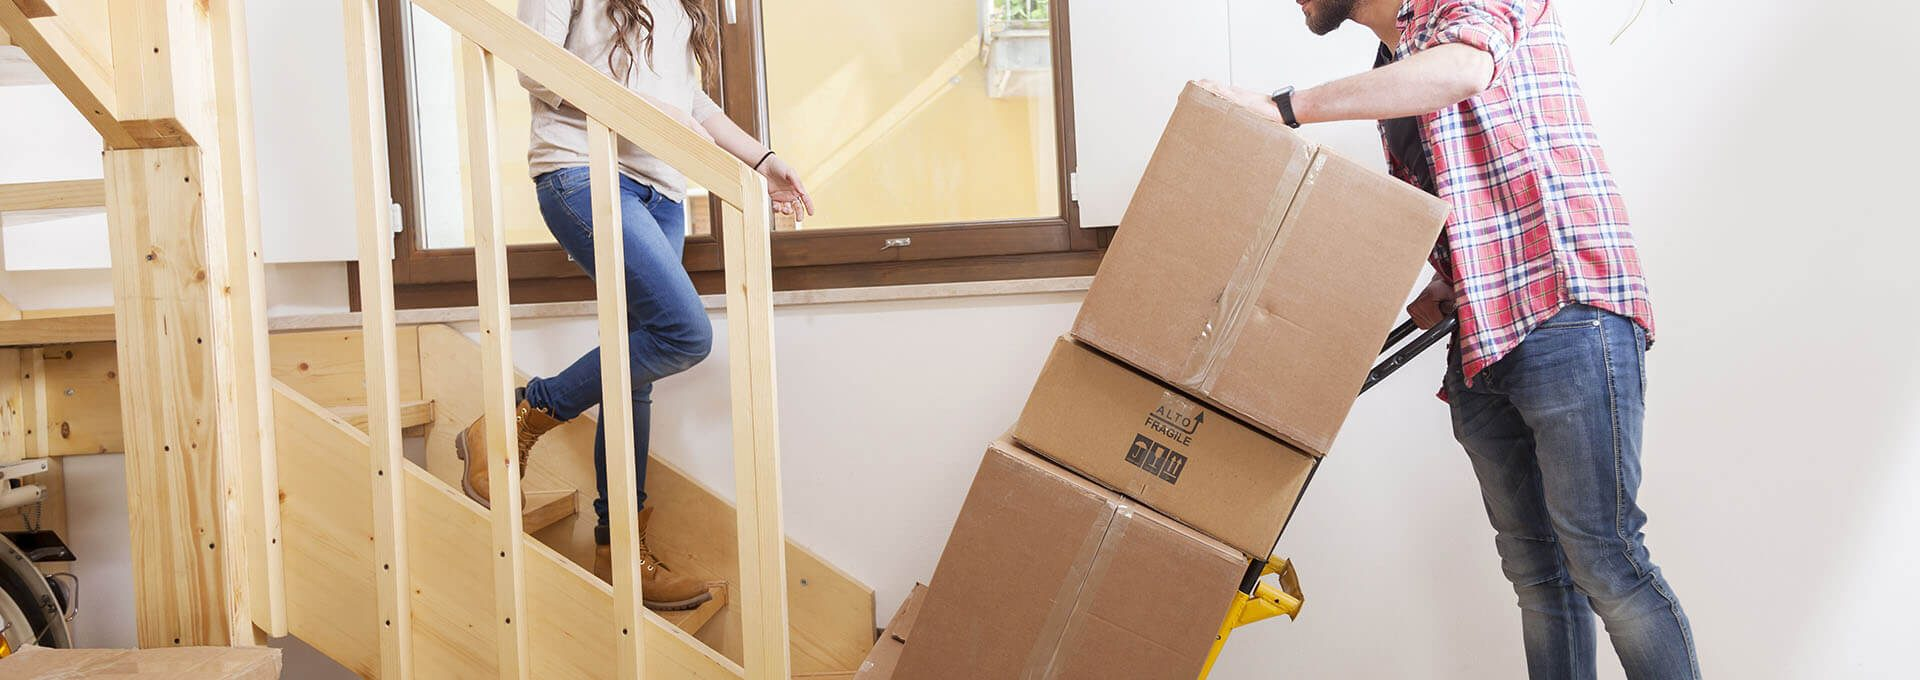 Tips & Tools For Moving